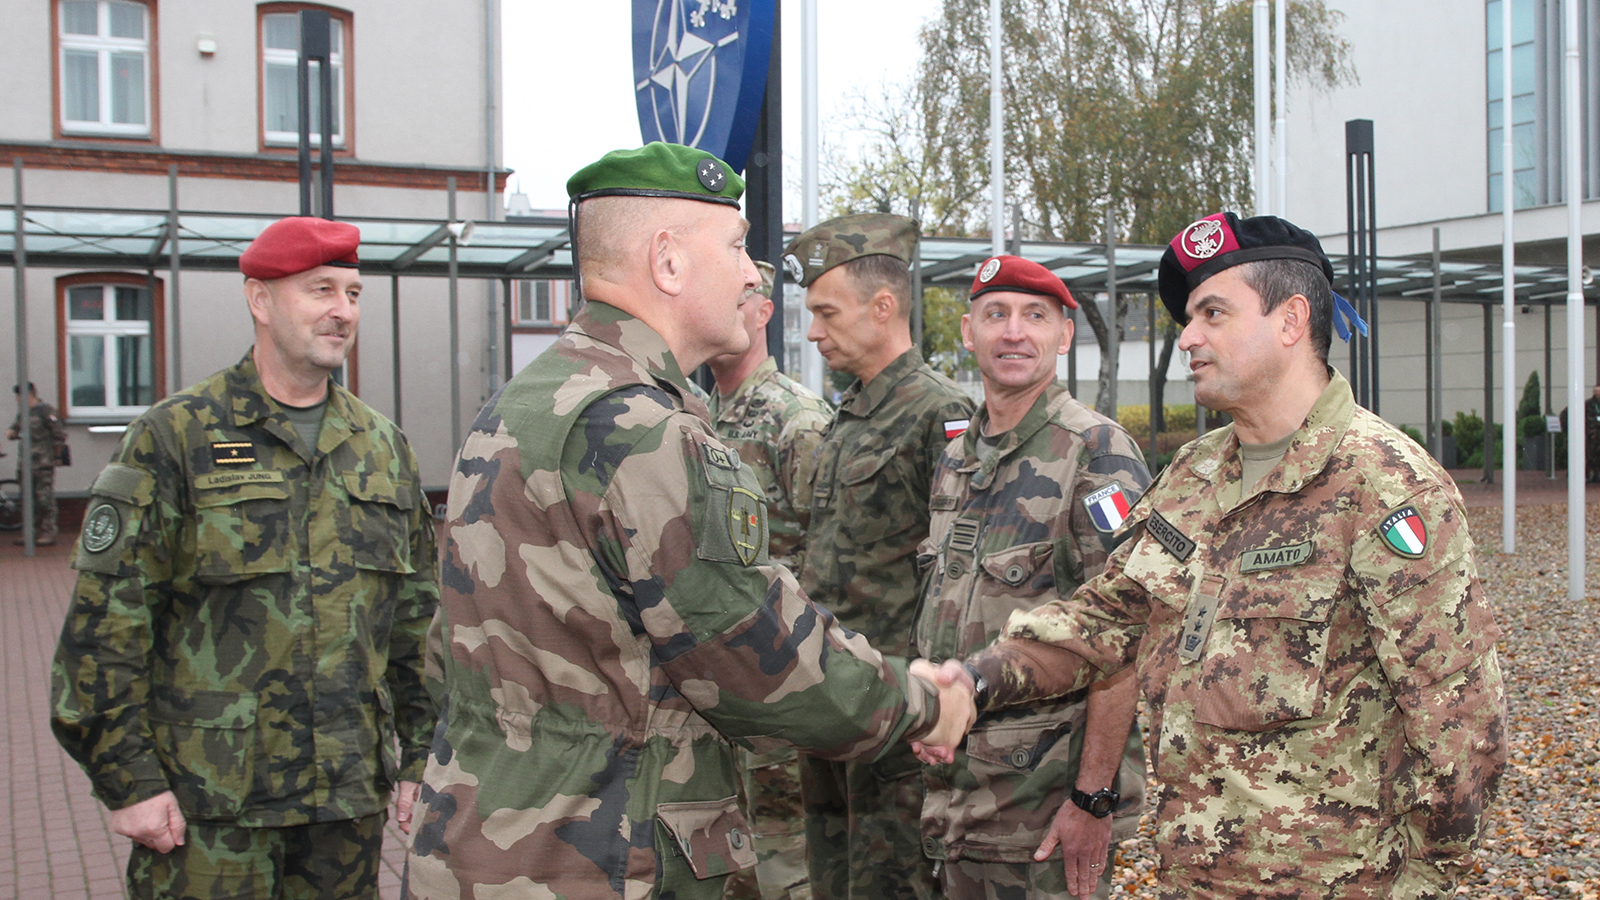 Joint Force Command Brunssum Chief of Staff Observes Last Phase of Resolute Support Training